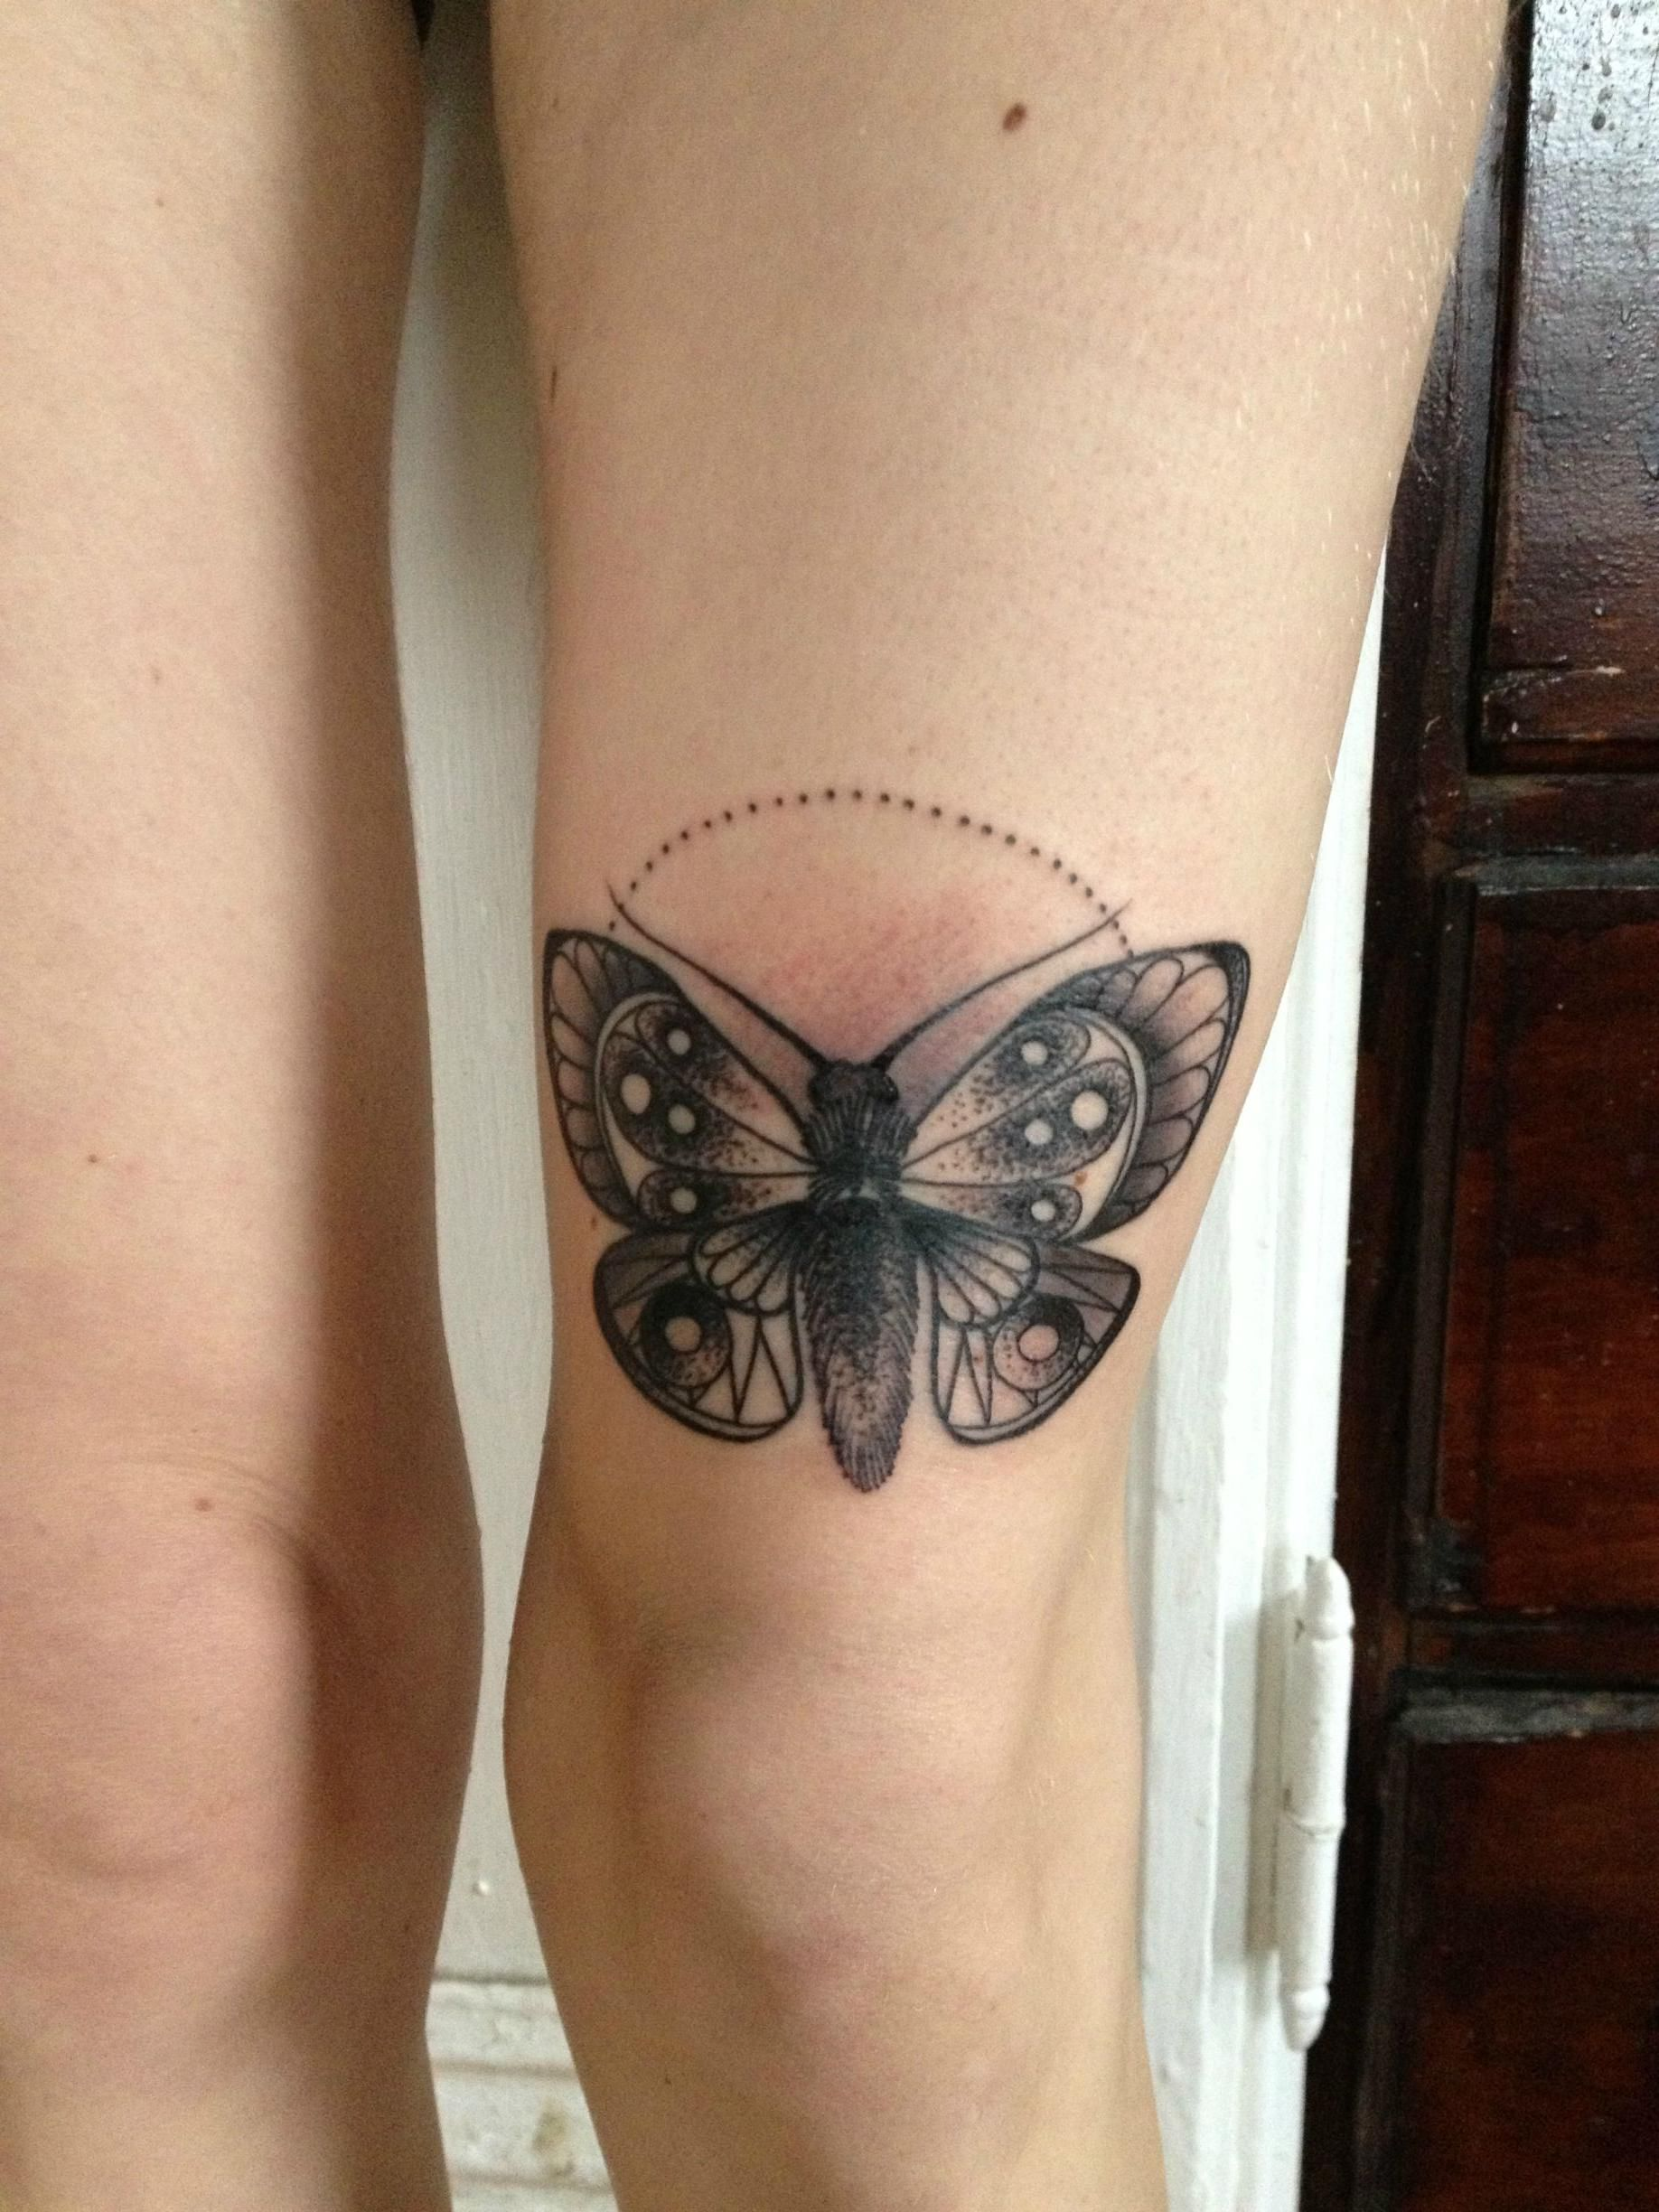 dotwork moth by amanda abbott at brilliance tattoo boston ma tattoos pinterest tattoo. Black Bedroom Furniture Sets. Home Design Ideas